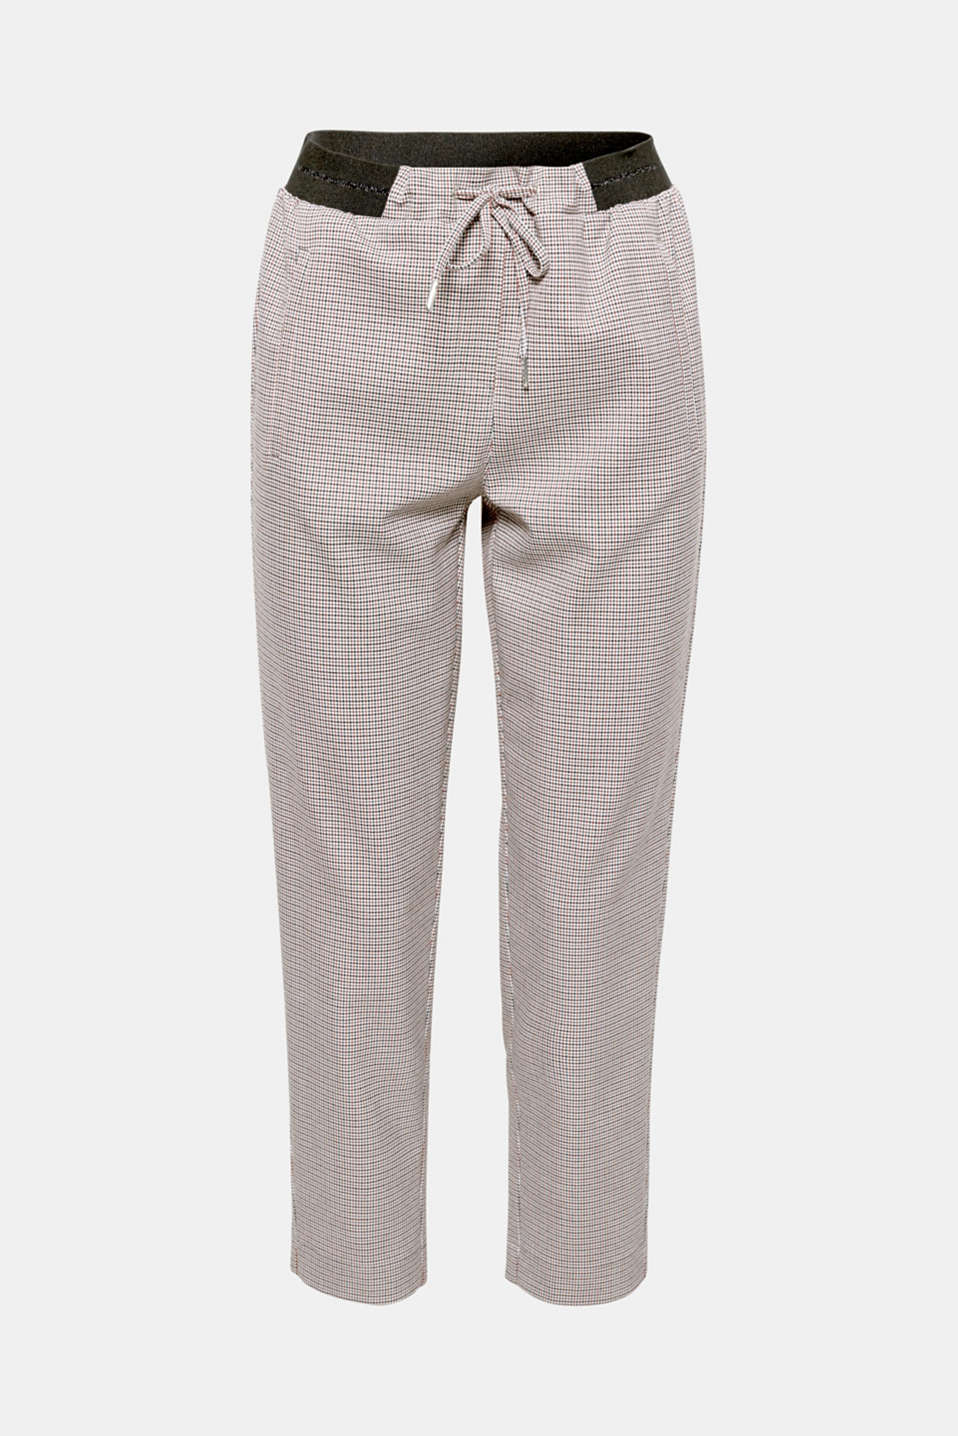 These cropped tracksuit bottoms with a classic houndstooth pattern and added stretch for comfort exude smart casualness.